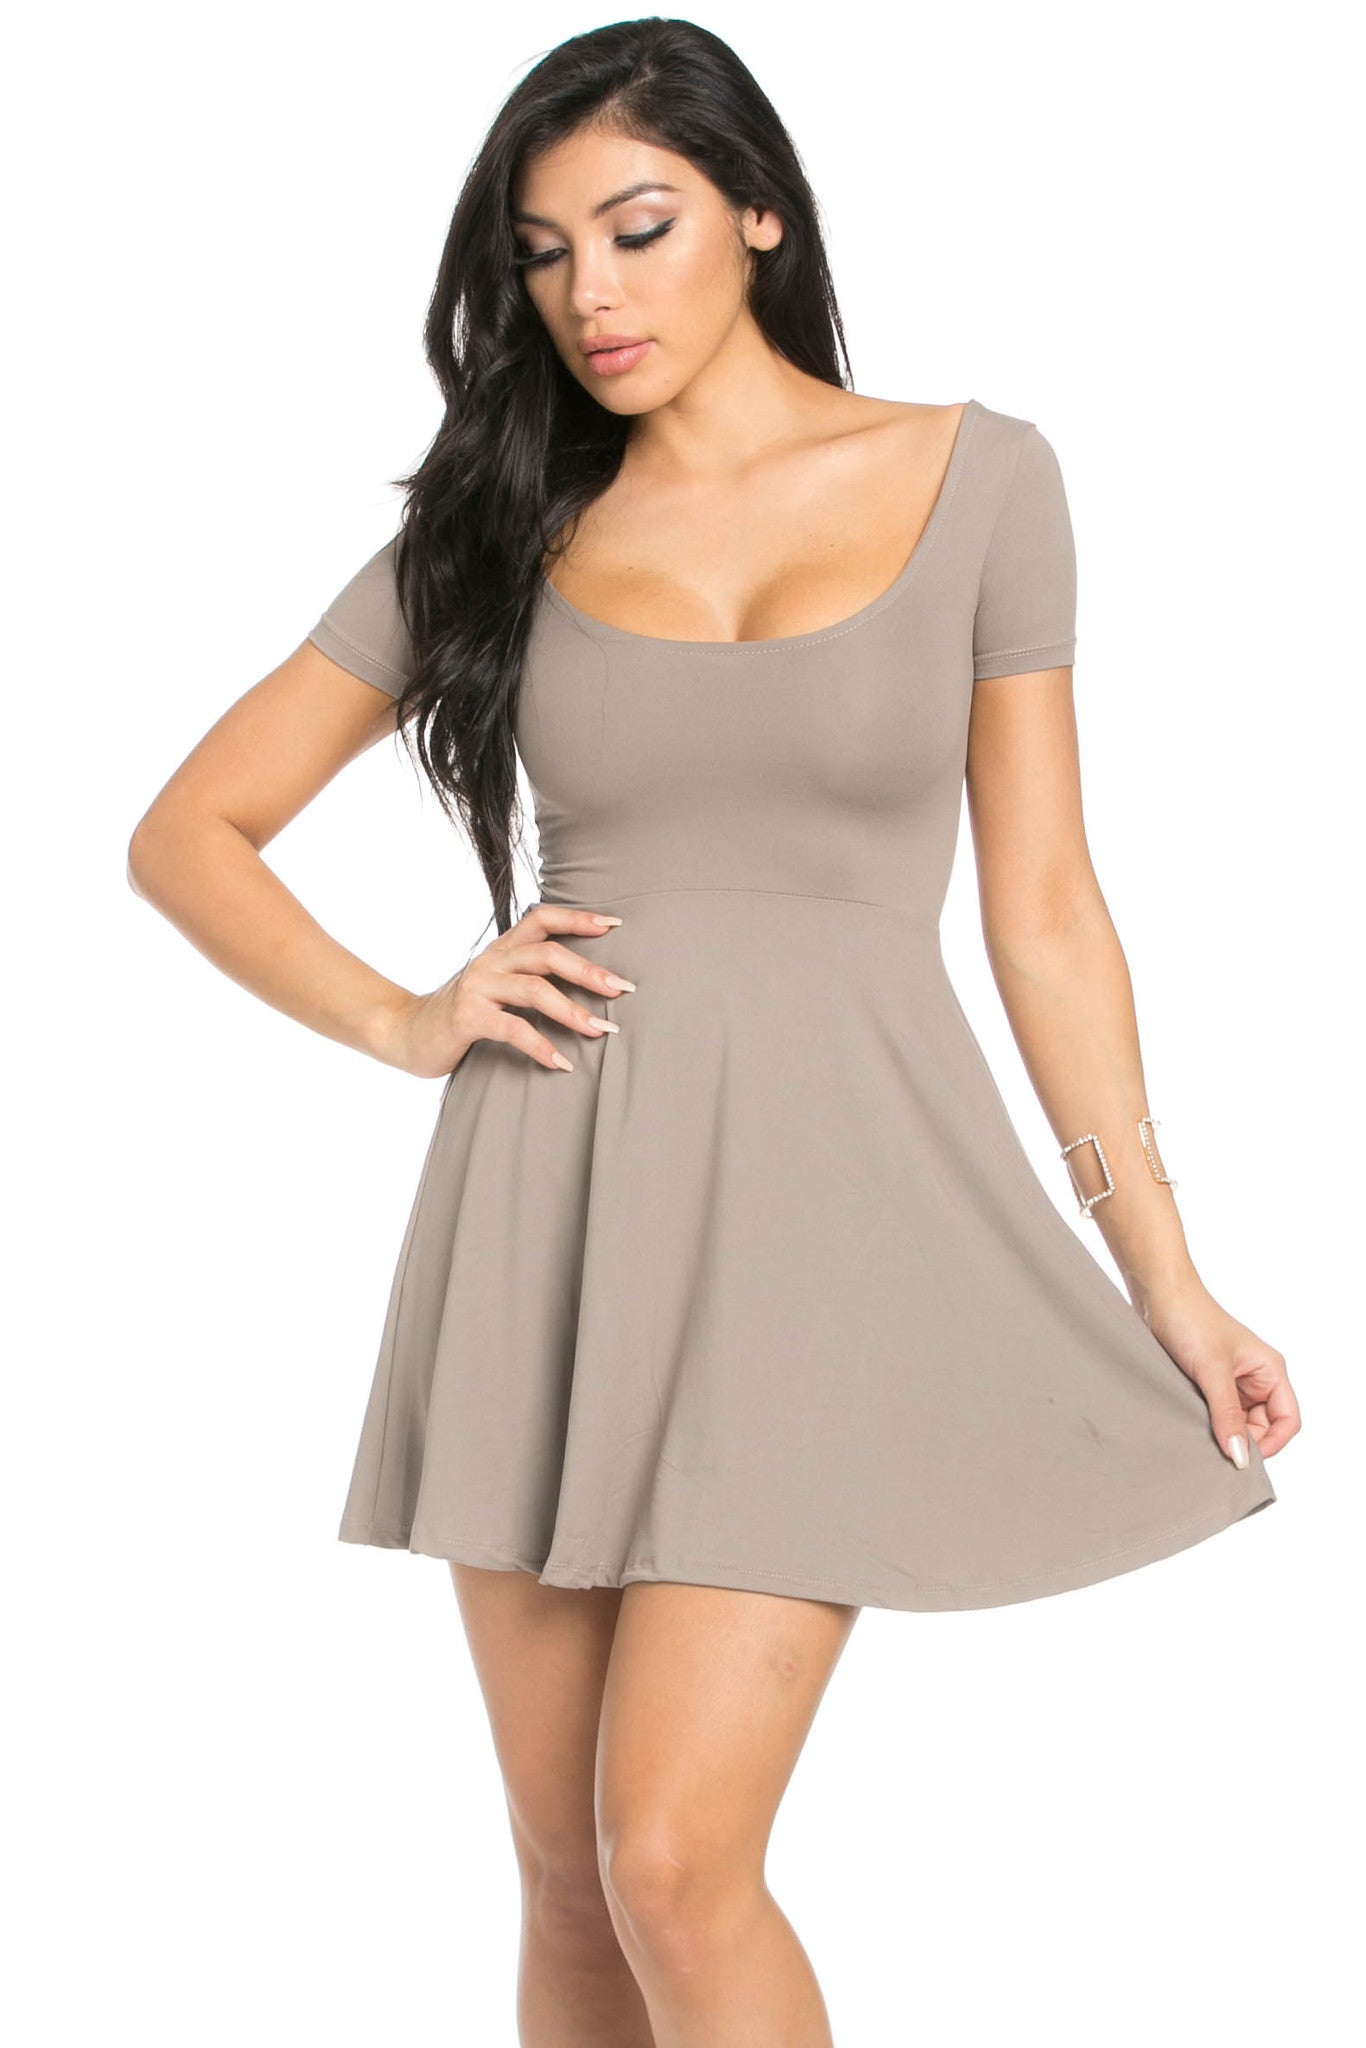 Micro Suede Taupe Mini Dress - Dresses - My Yuccie - 1